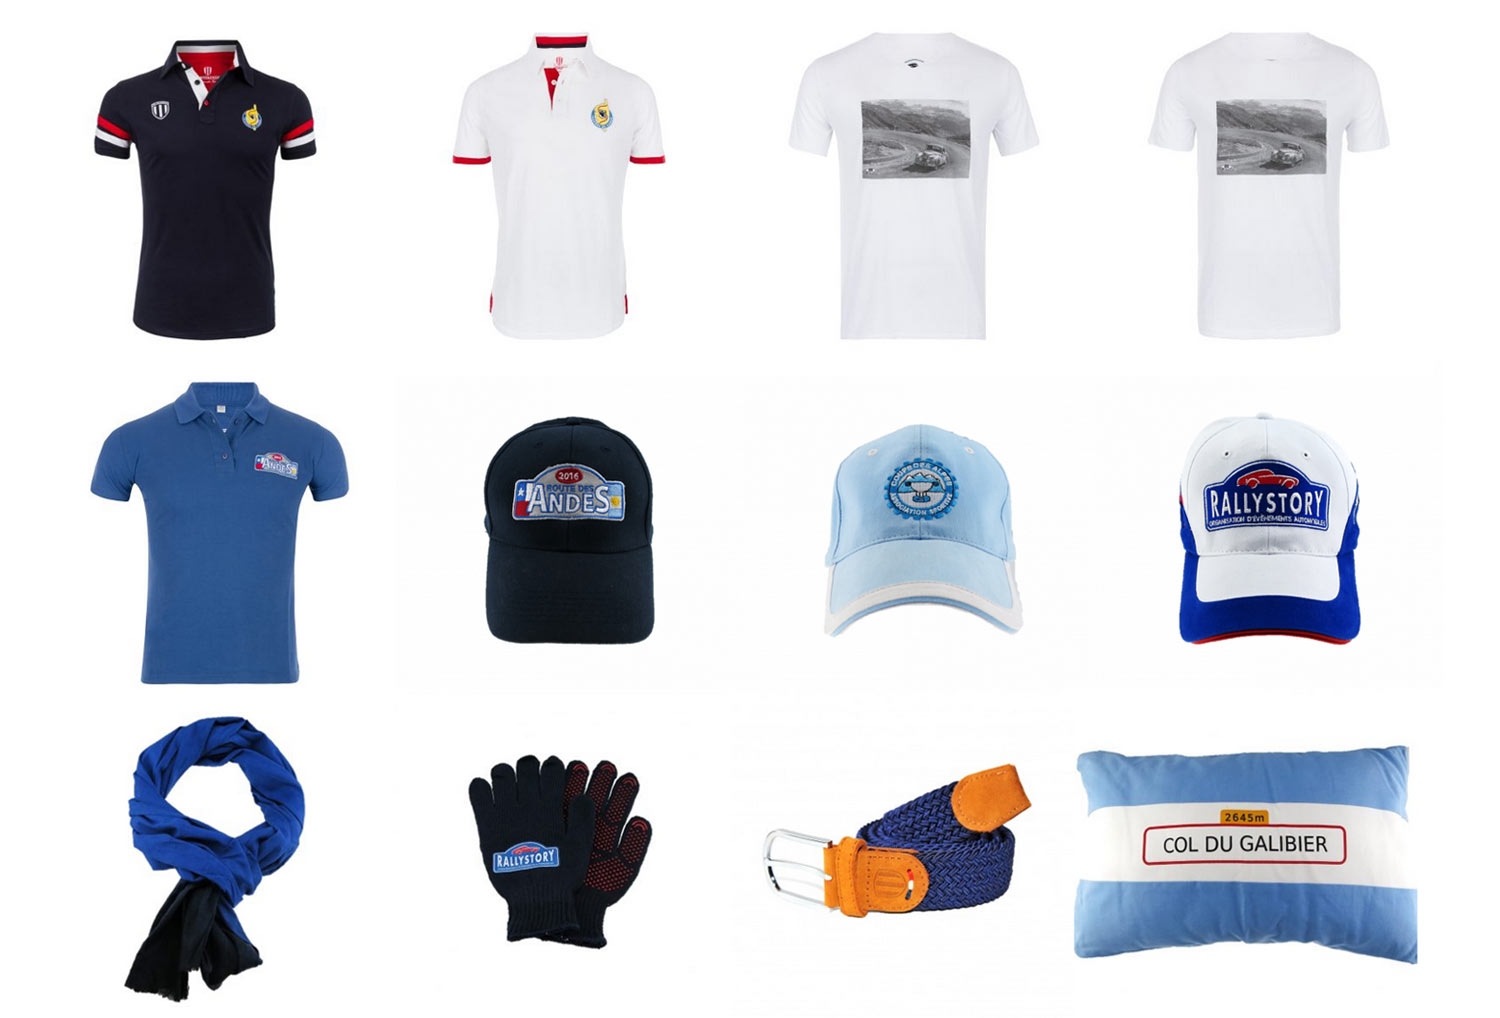 Lancement Rallystory Boutique